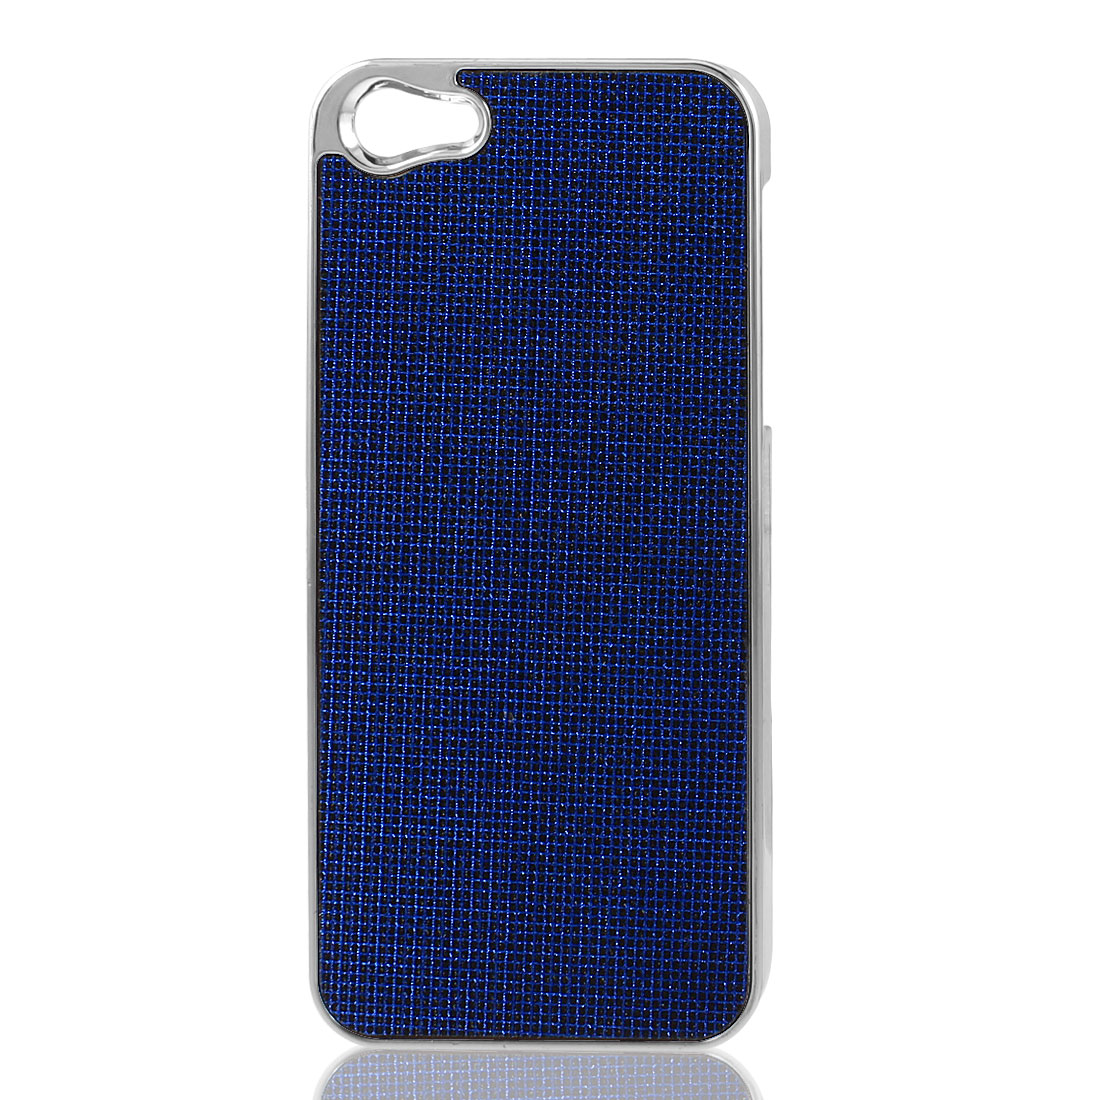 Royal Blue Bling Glittery Hard Plastic Back Case Cover for iPhone 5 5G